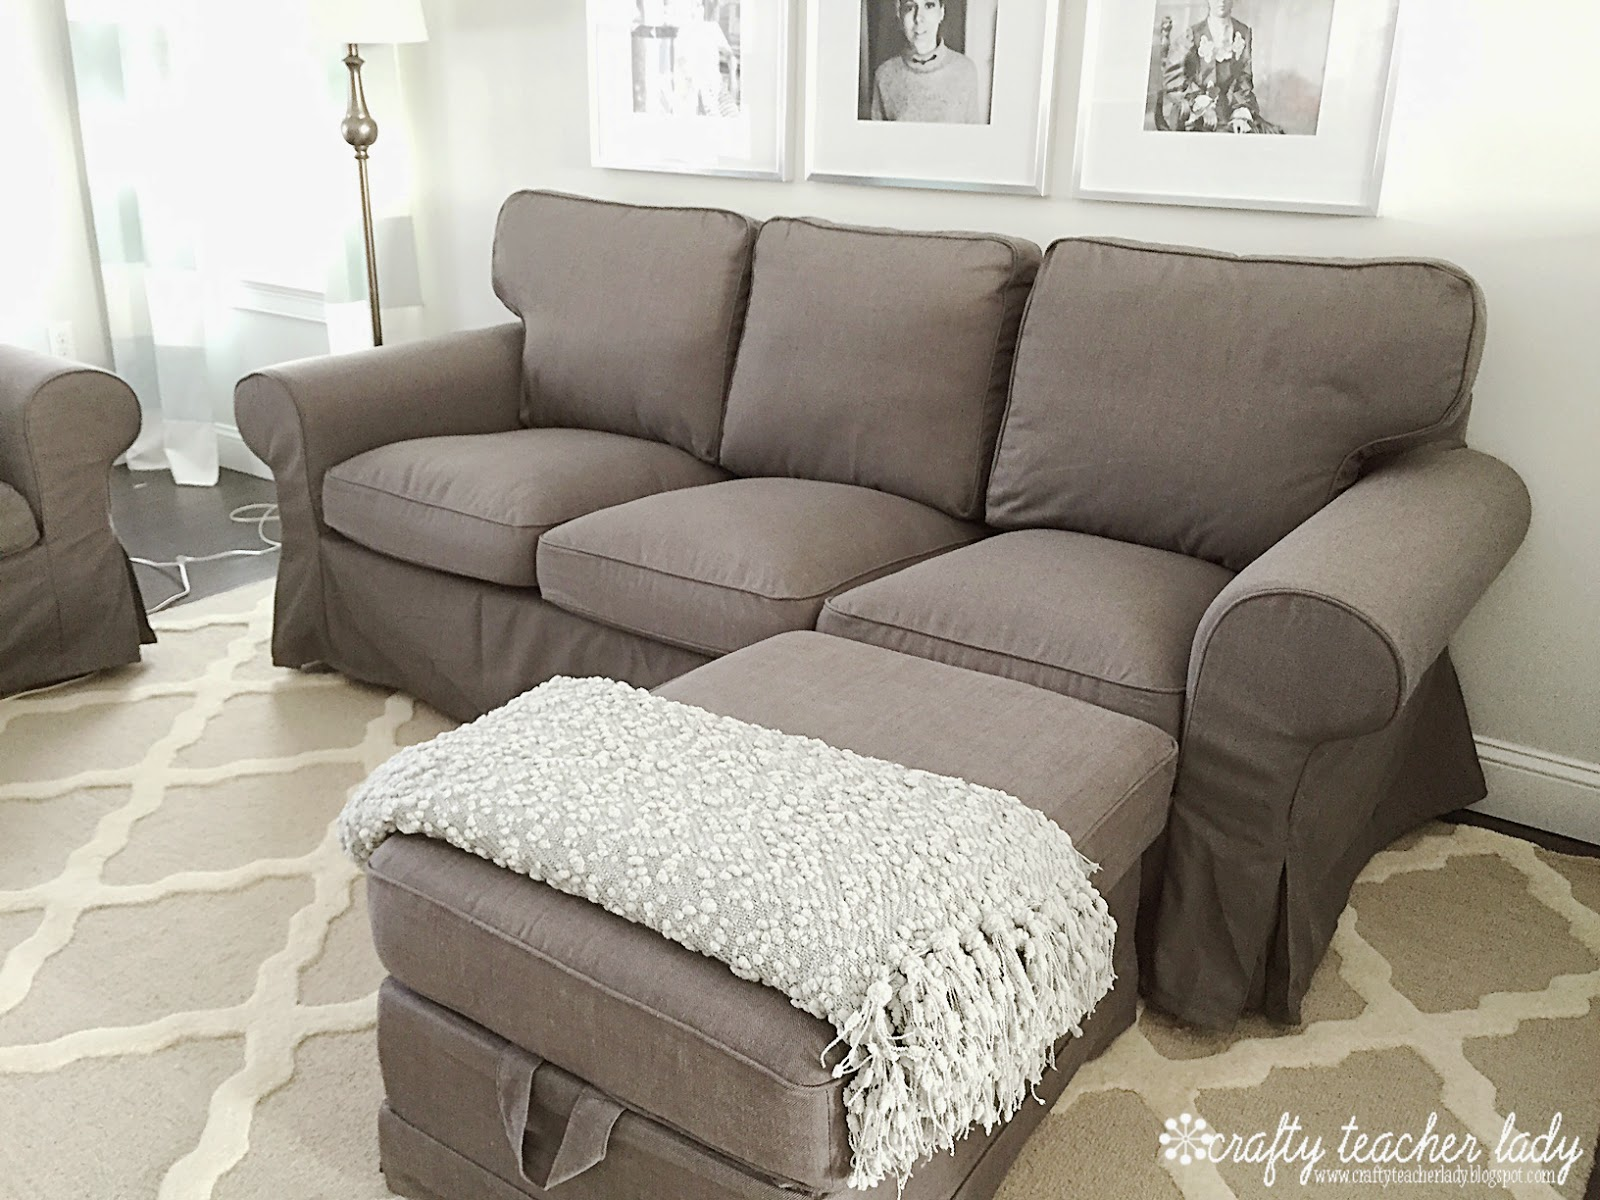 Ikea Bezüge Sofa Crafty Teacher Lady Review Of The Ikea Ektorp Sofa Series